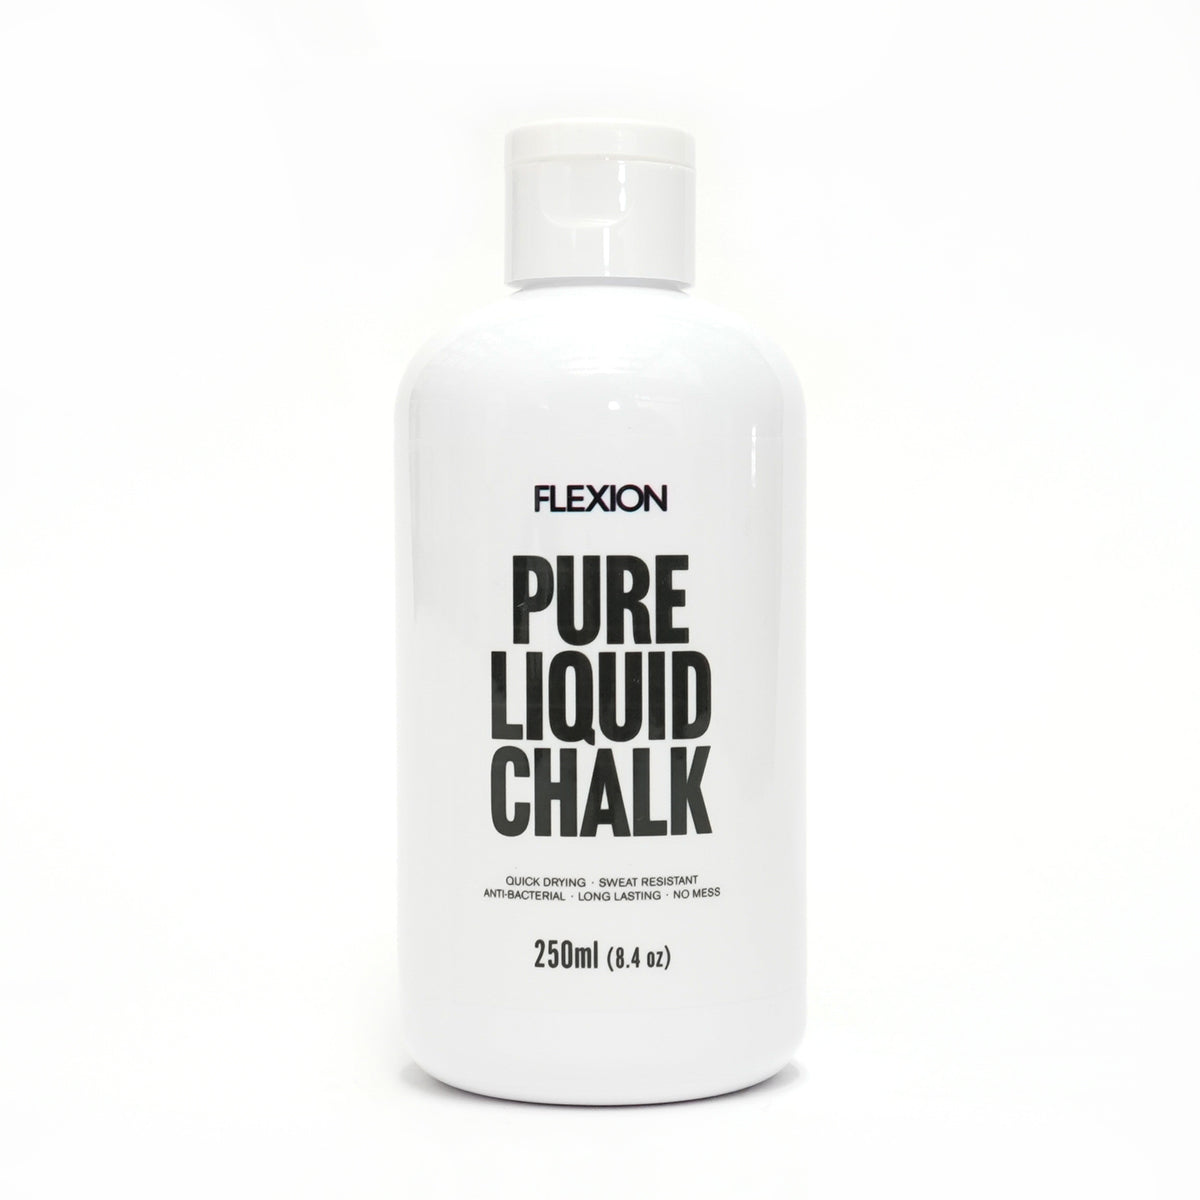 Flexion Pure Liquid Chalk - 250ml